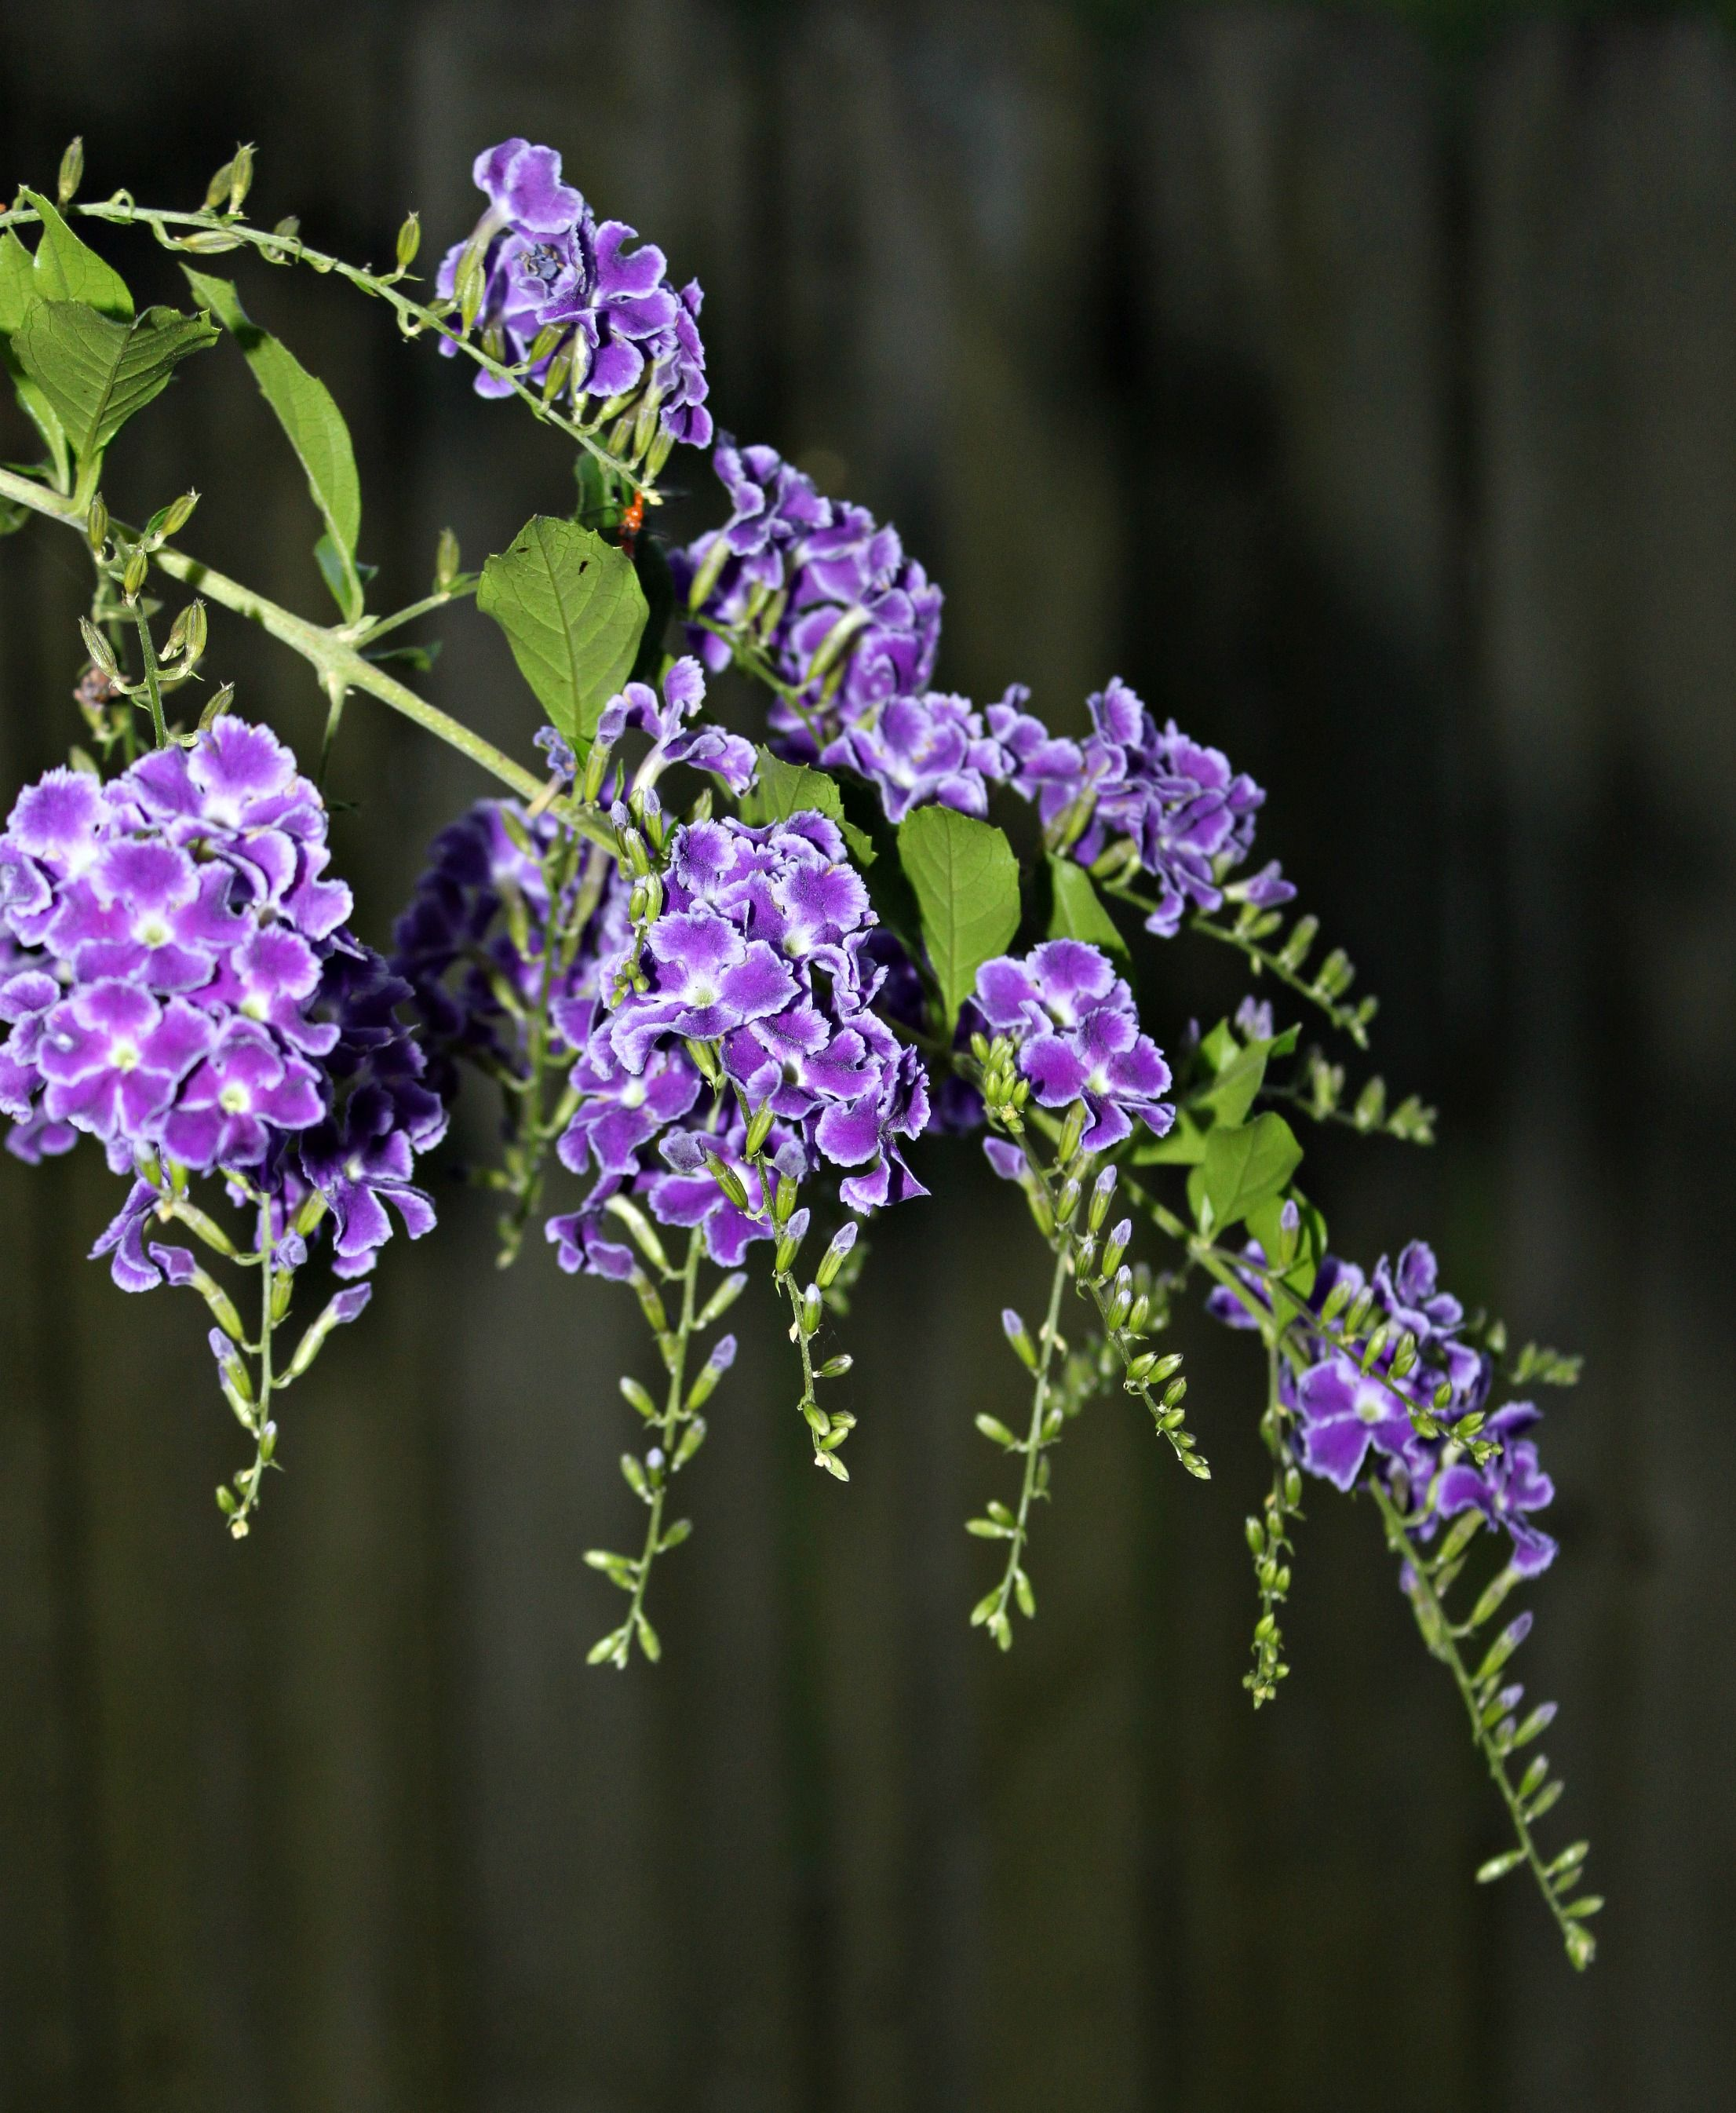 Shrubs with purple flowers at end of branch - Duranta Golden Dewdrop Skyflower This Bush Has Clusters Of Lovely Purple Blooms Followed By